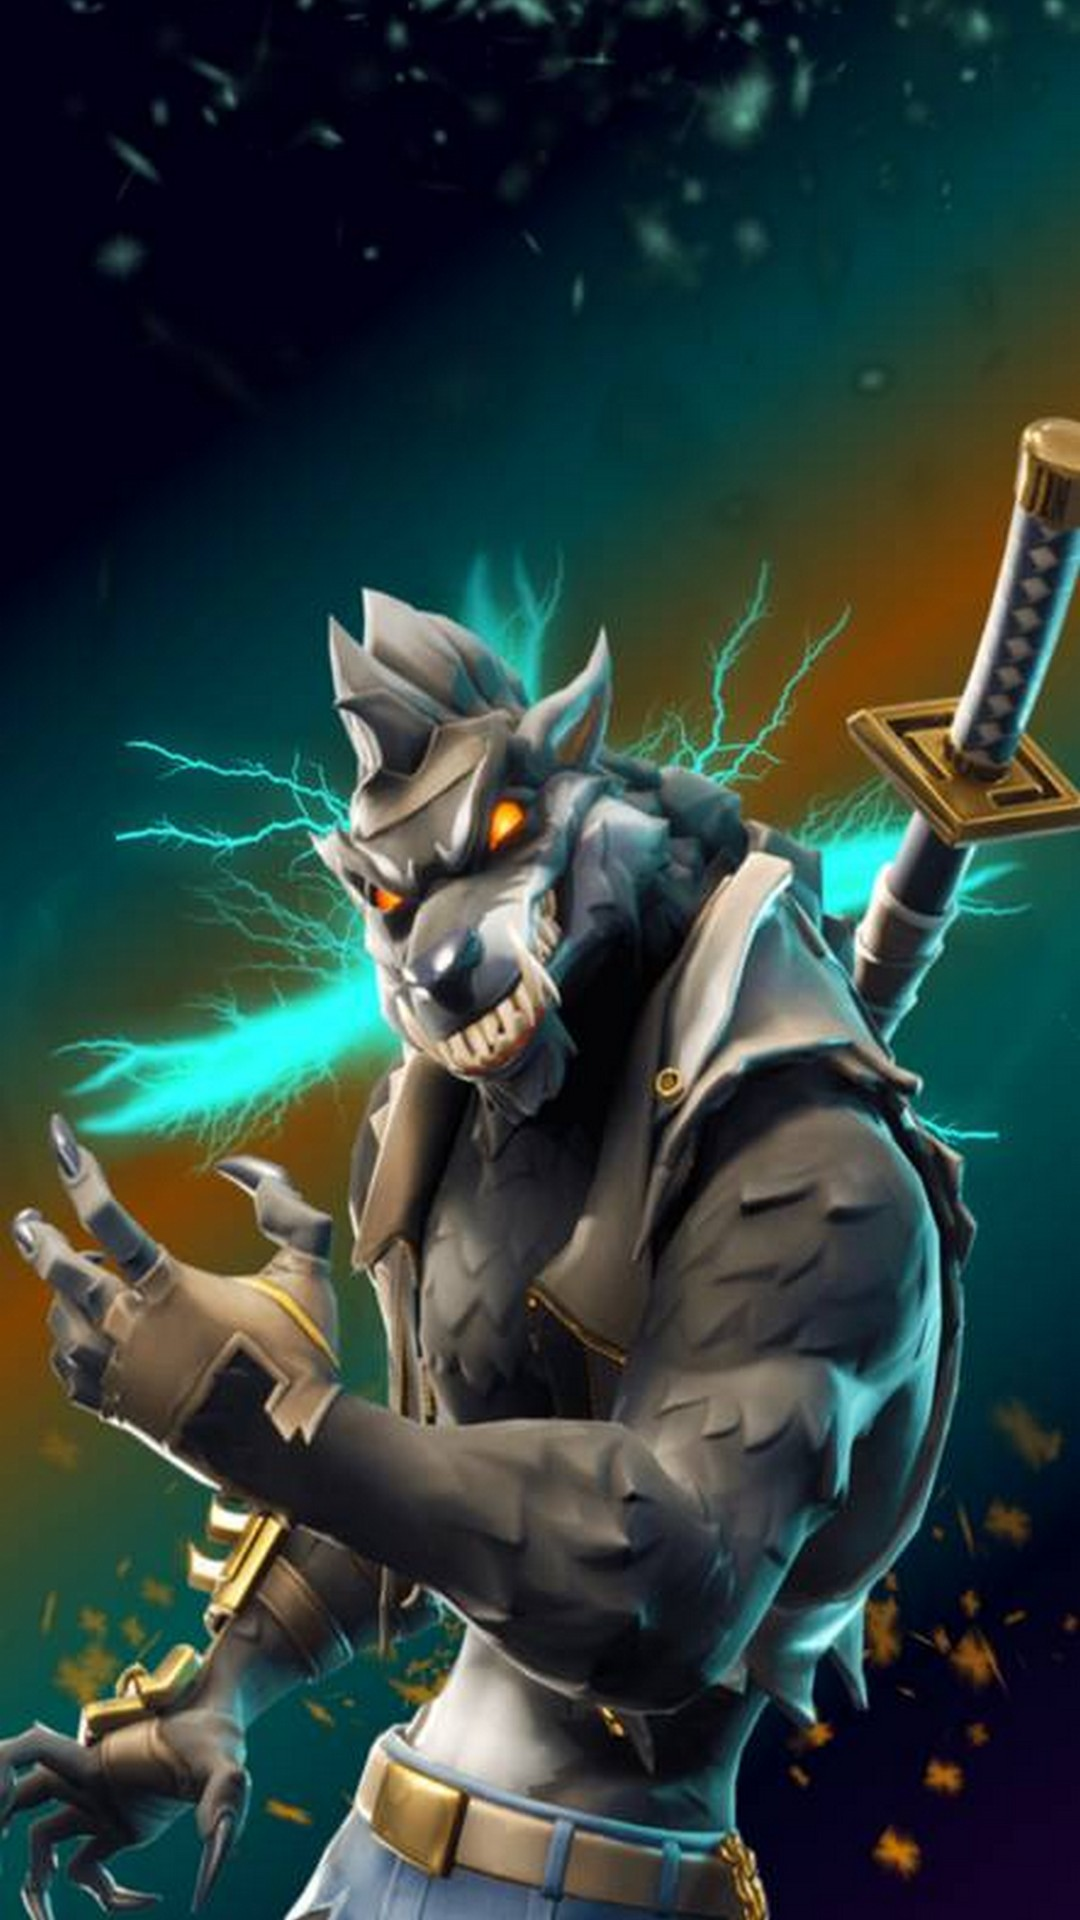 Fortnite Backgrounds For Android   2019 Android Wallpapers 1080x1920